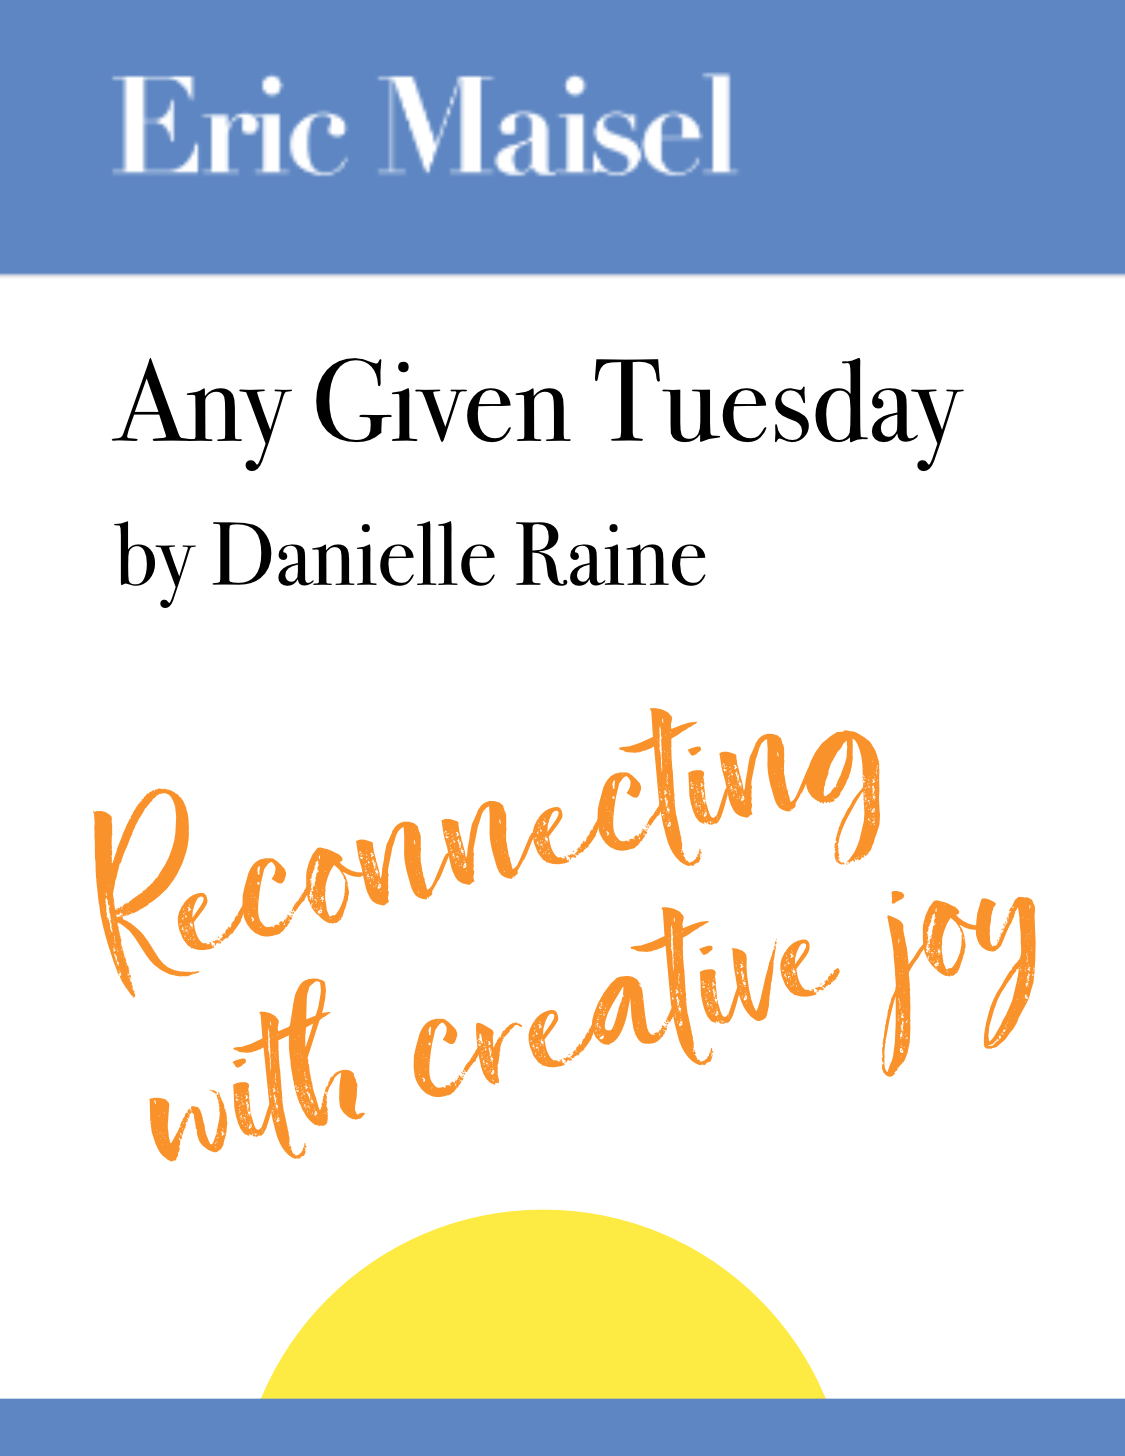 Any Given Tuesday reconnecting creative joy eric maisel blog